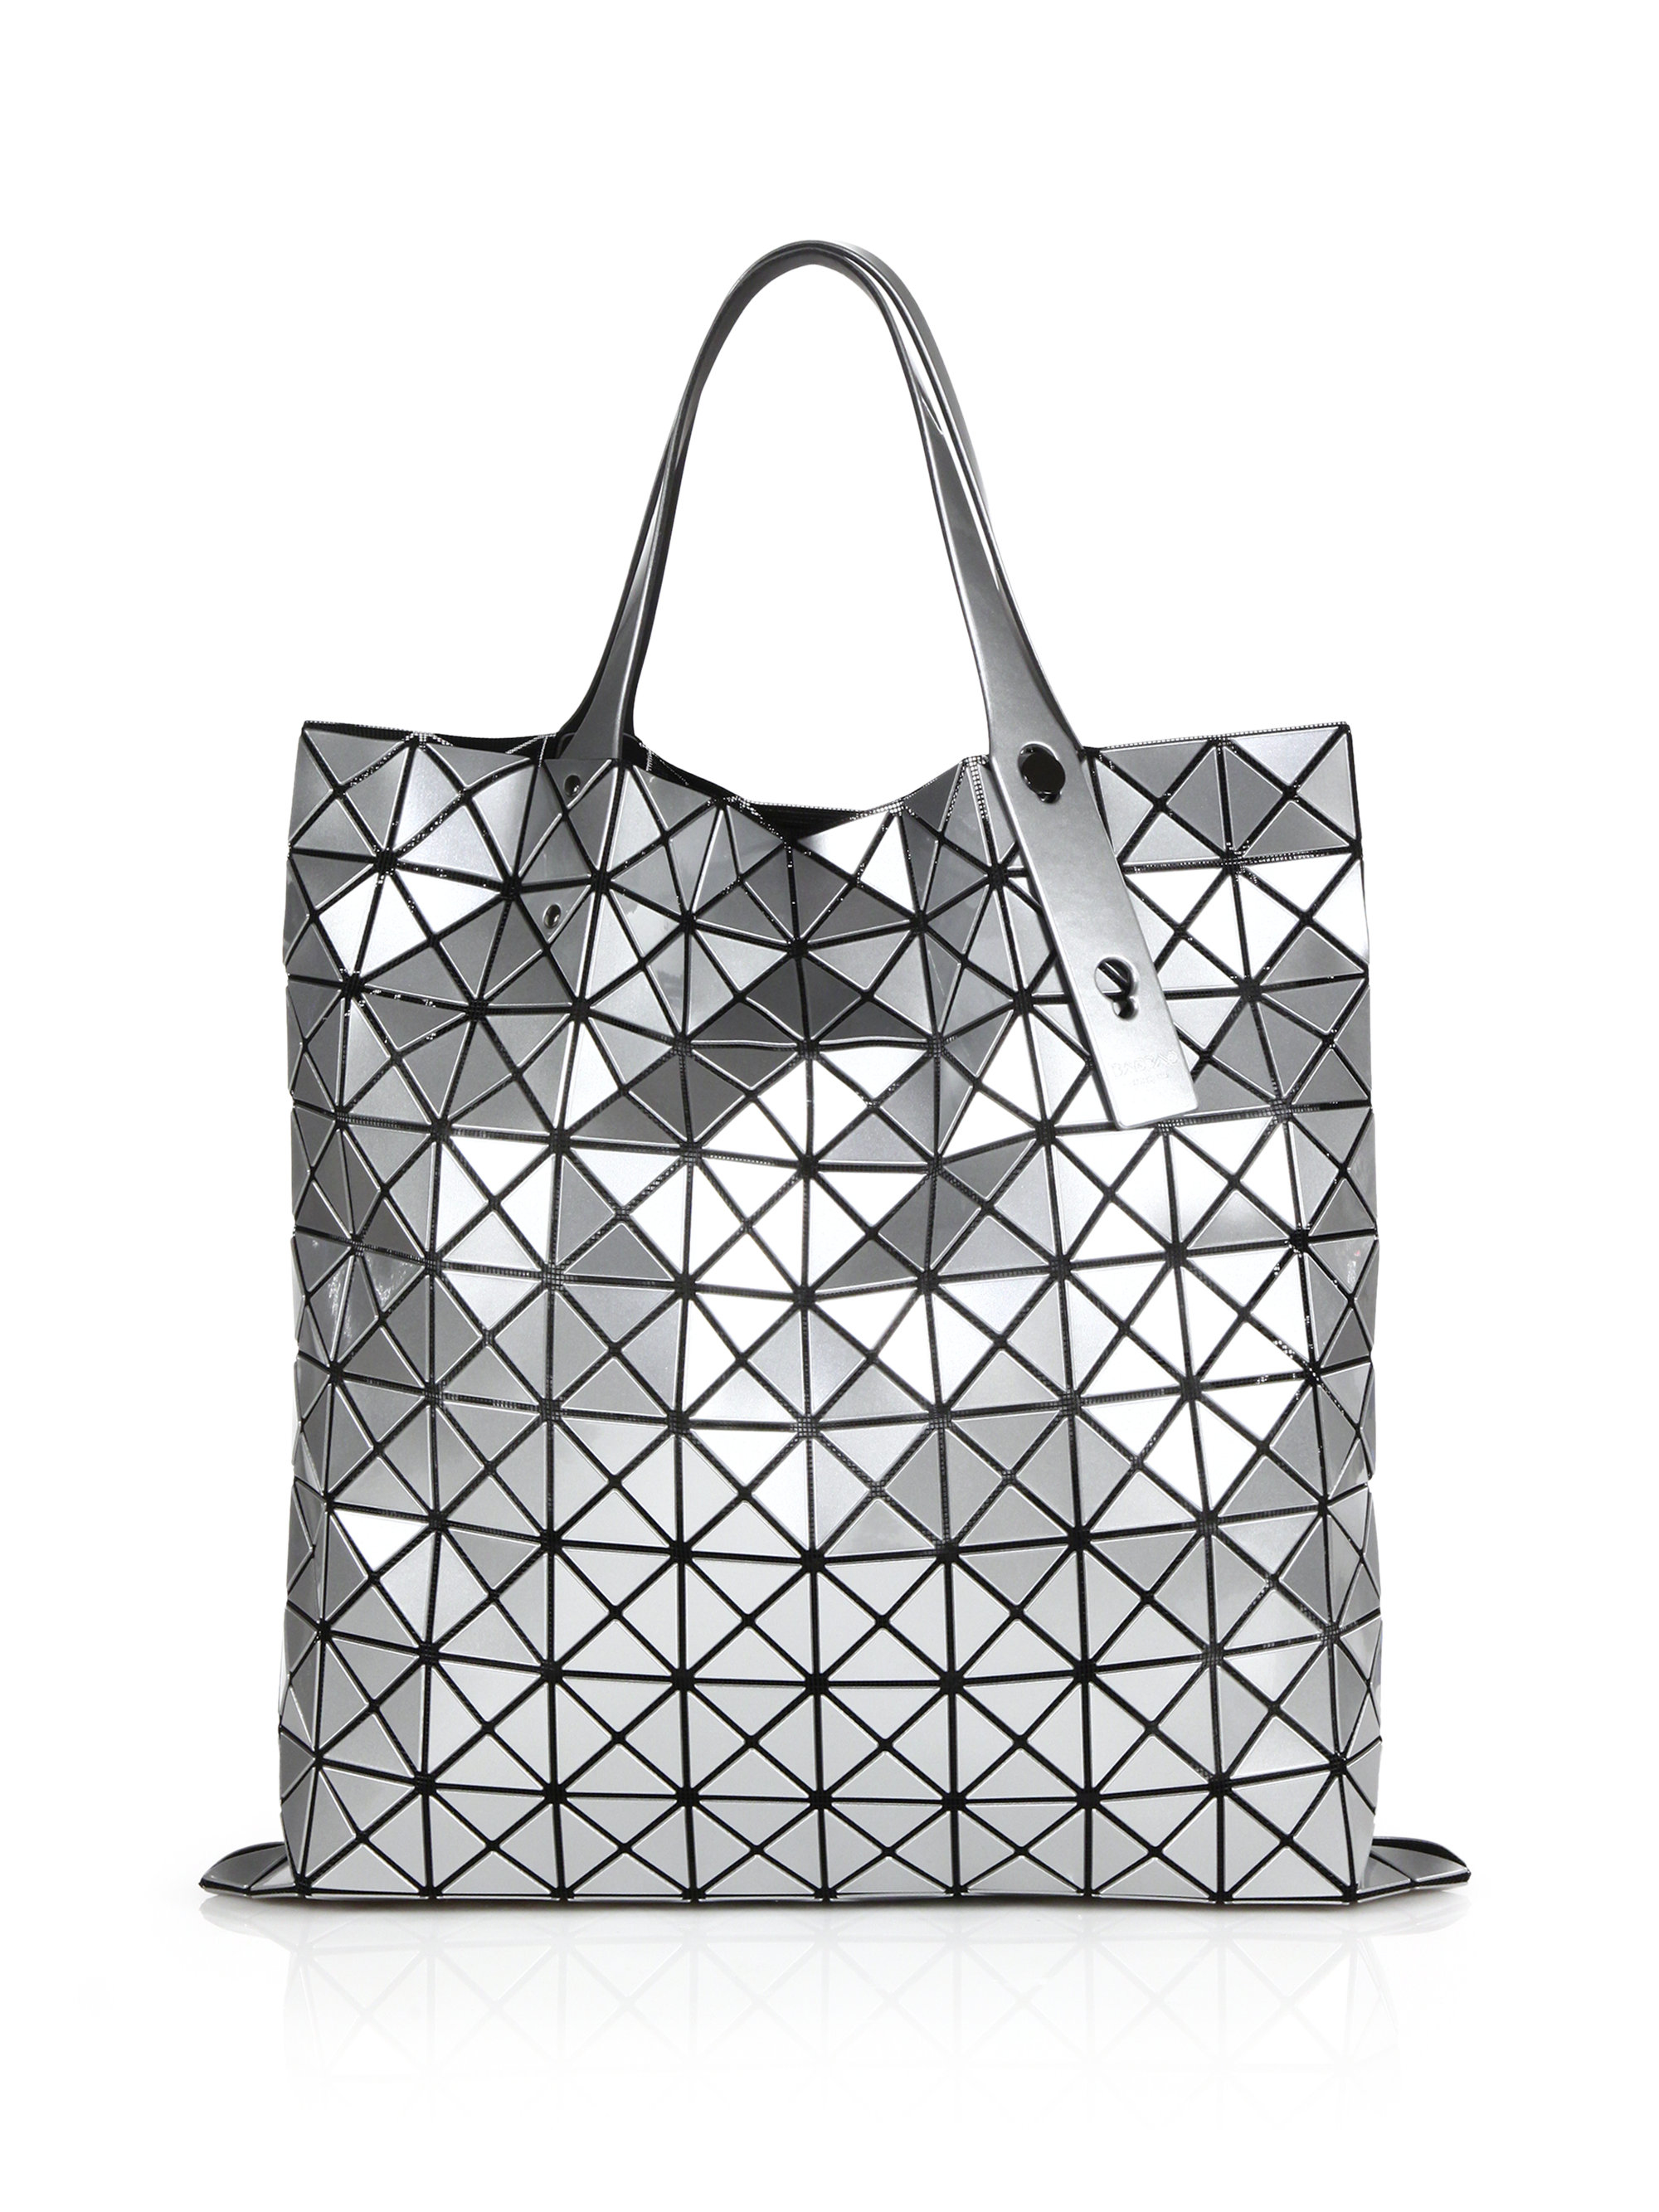 c5ceb95e2939 Gallery. Previously sold at  Saks Fifth Avenue · Women s Bao Bao Issey  Miyake Prism ...